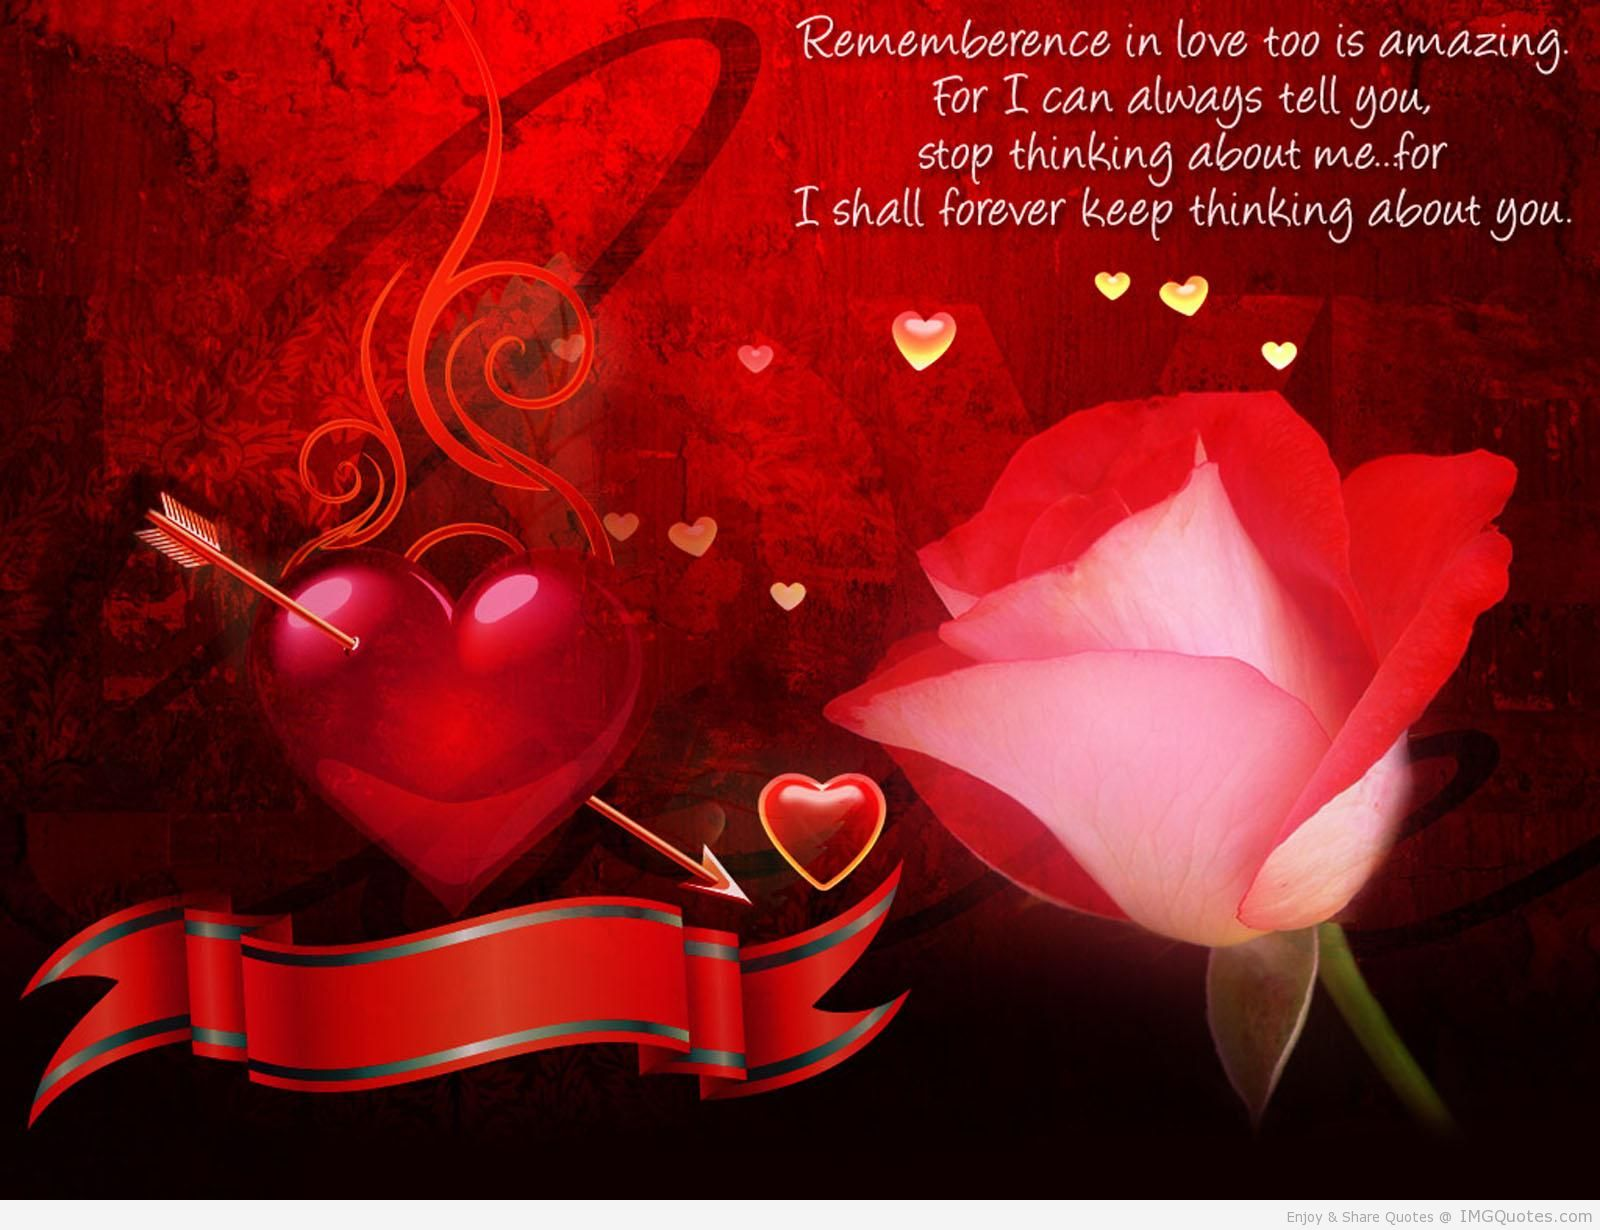 Quotes Of Sweet Love Heart Wallpaper Rhpinterestcom - Romantic Love Quotes With Rose - HD Wallpaper